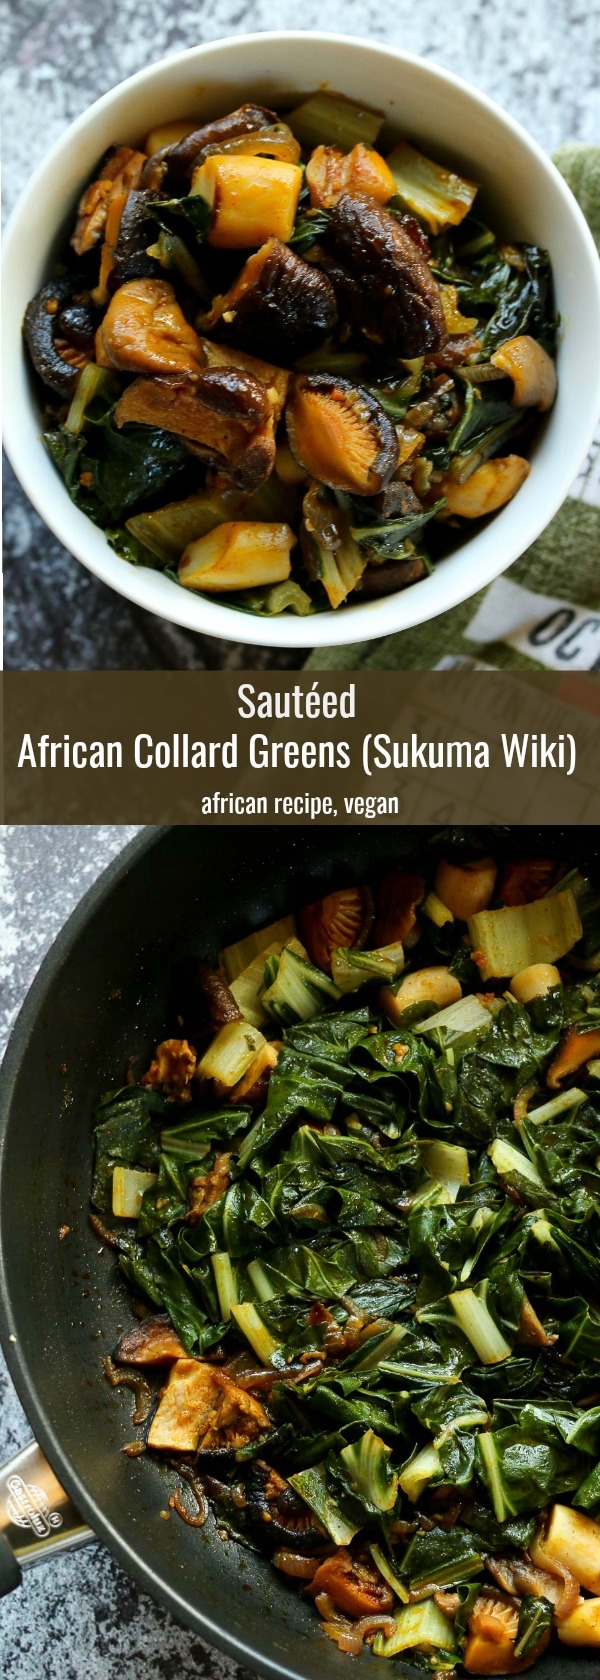 African Collard Greens and Mediterranean Swiss Chard come together in this flavoursome East African recipe. Vegan, Gluten-Free and packed with exotic flavours and goodness.